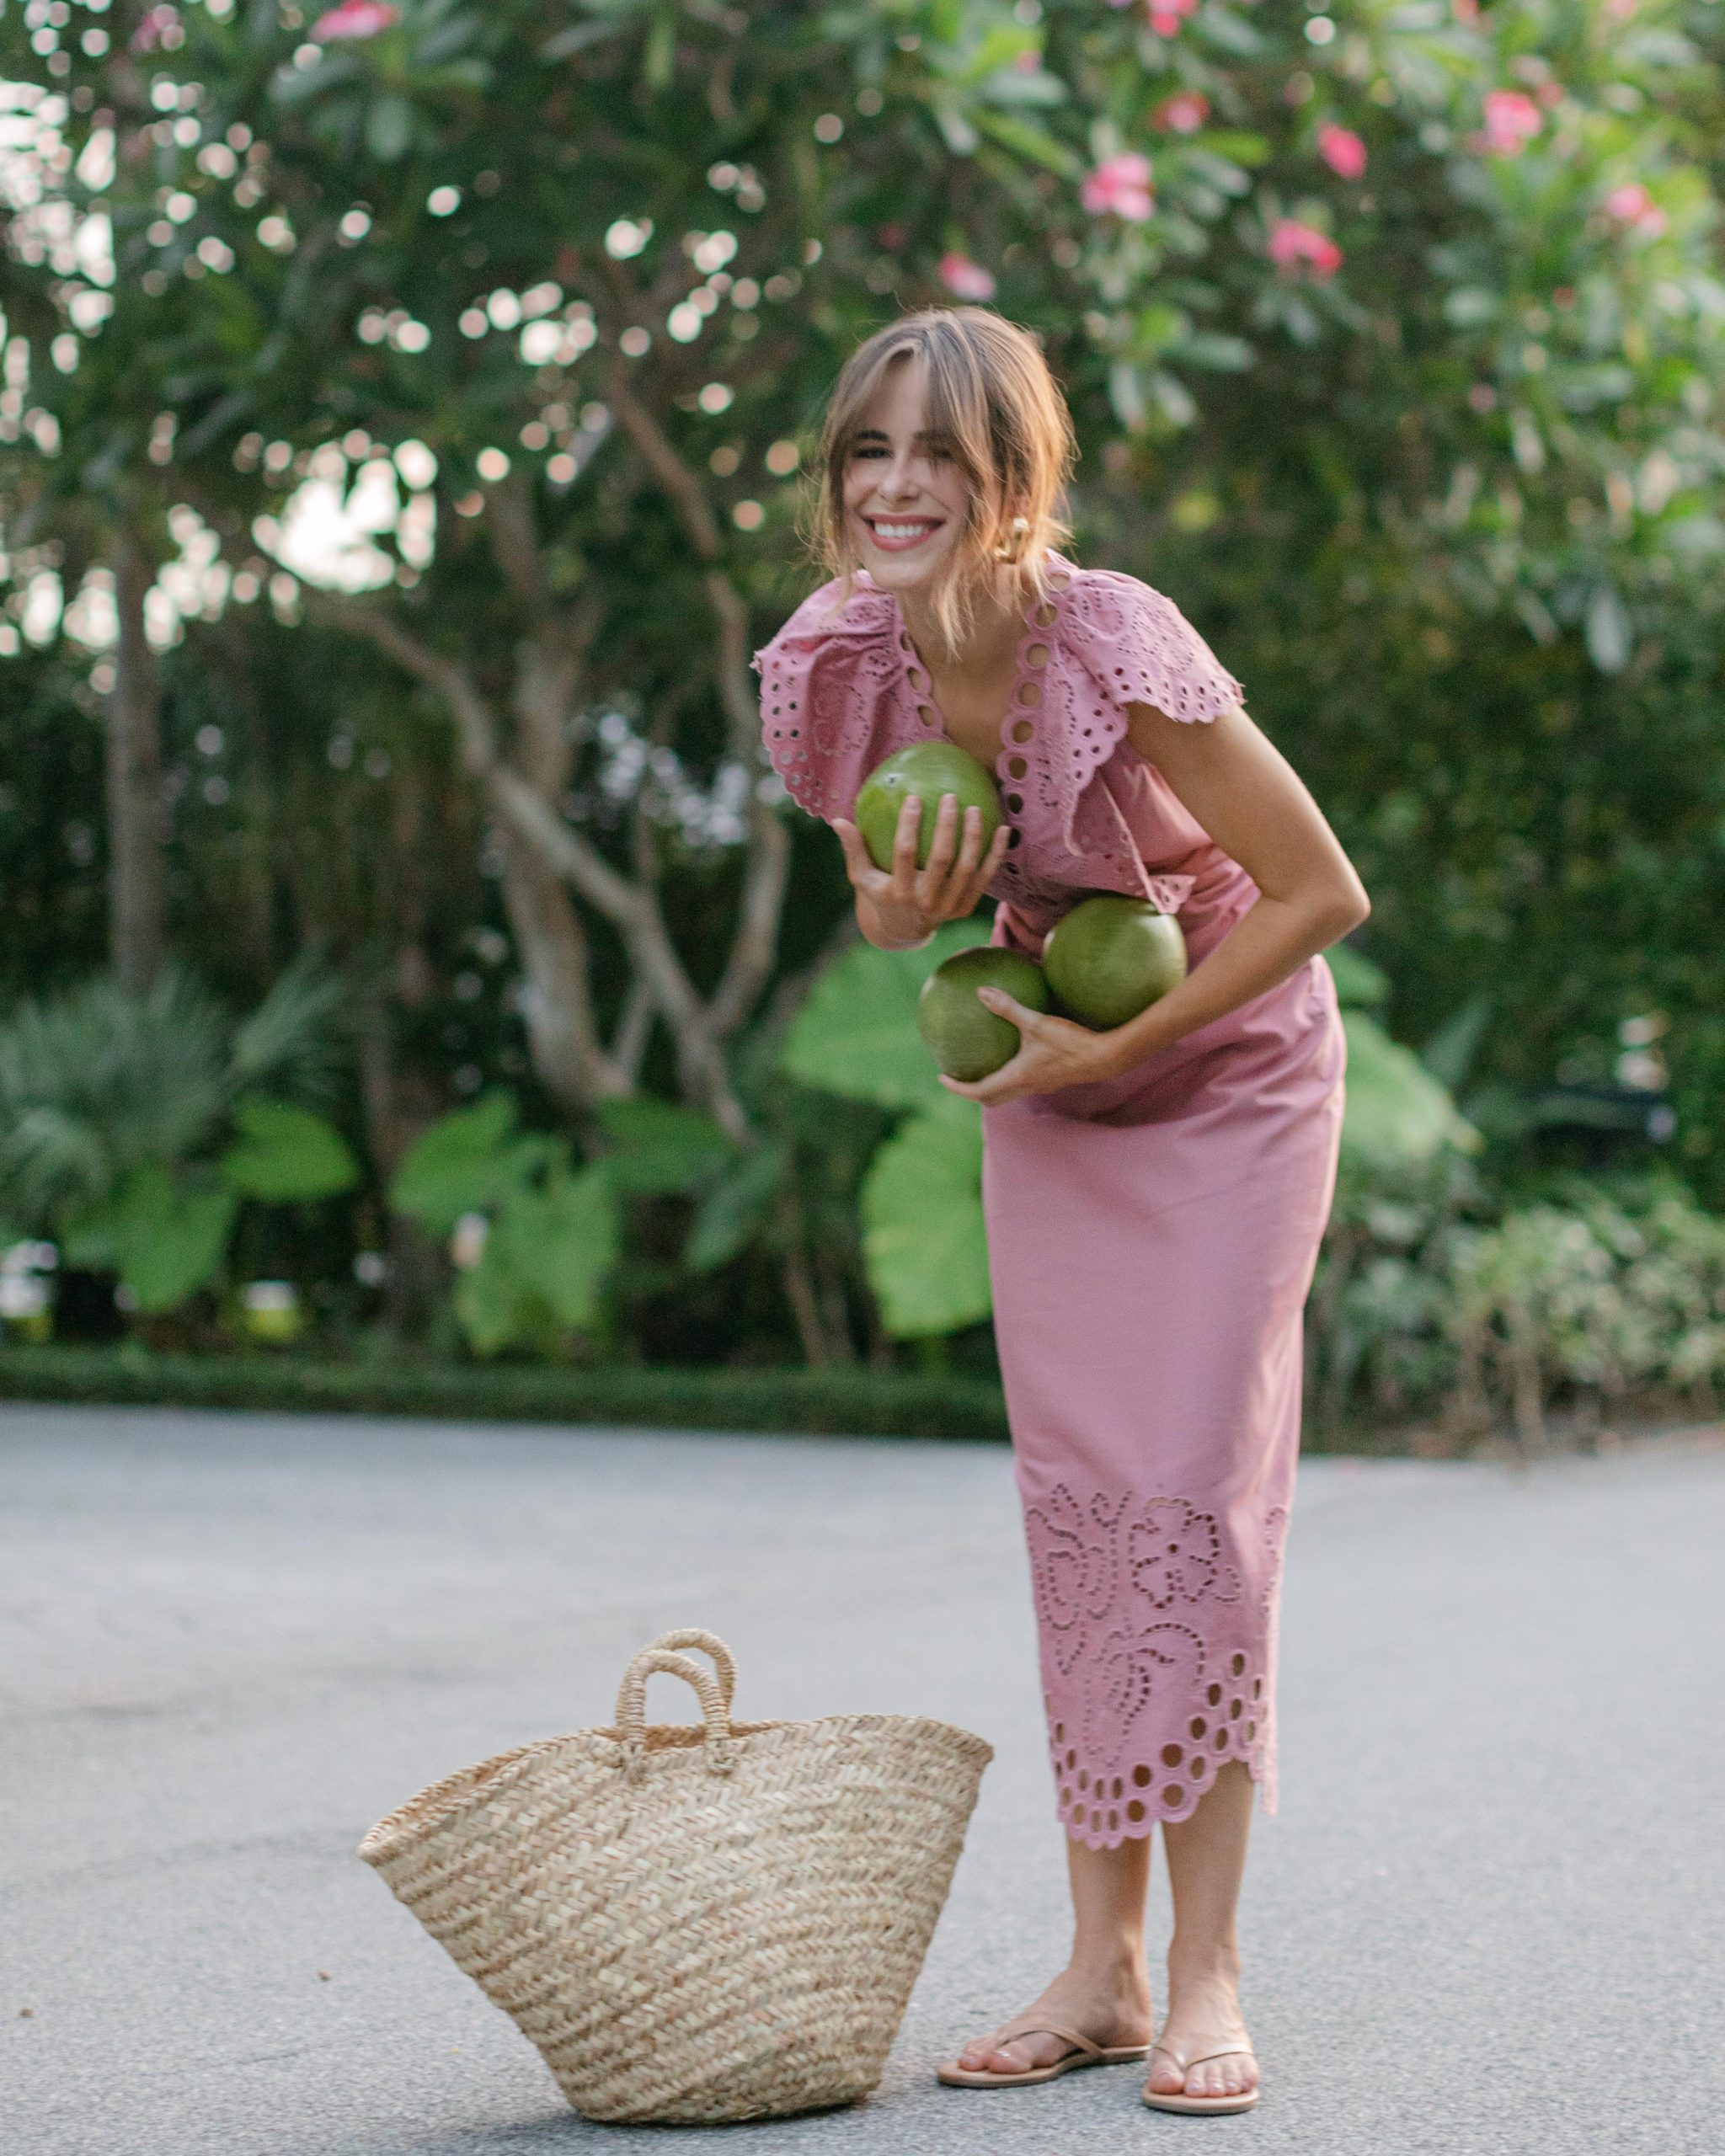 Cotton Pieces I Love for Summer by Stephanie Hill featured on The Style Bungalow